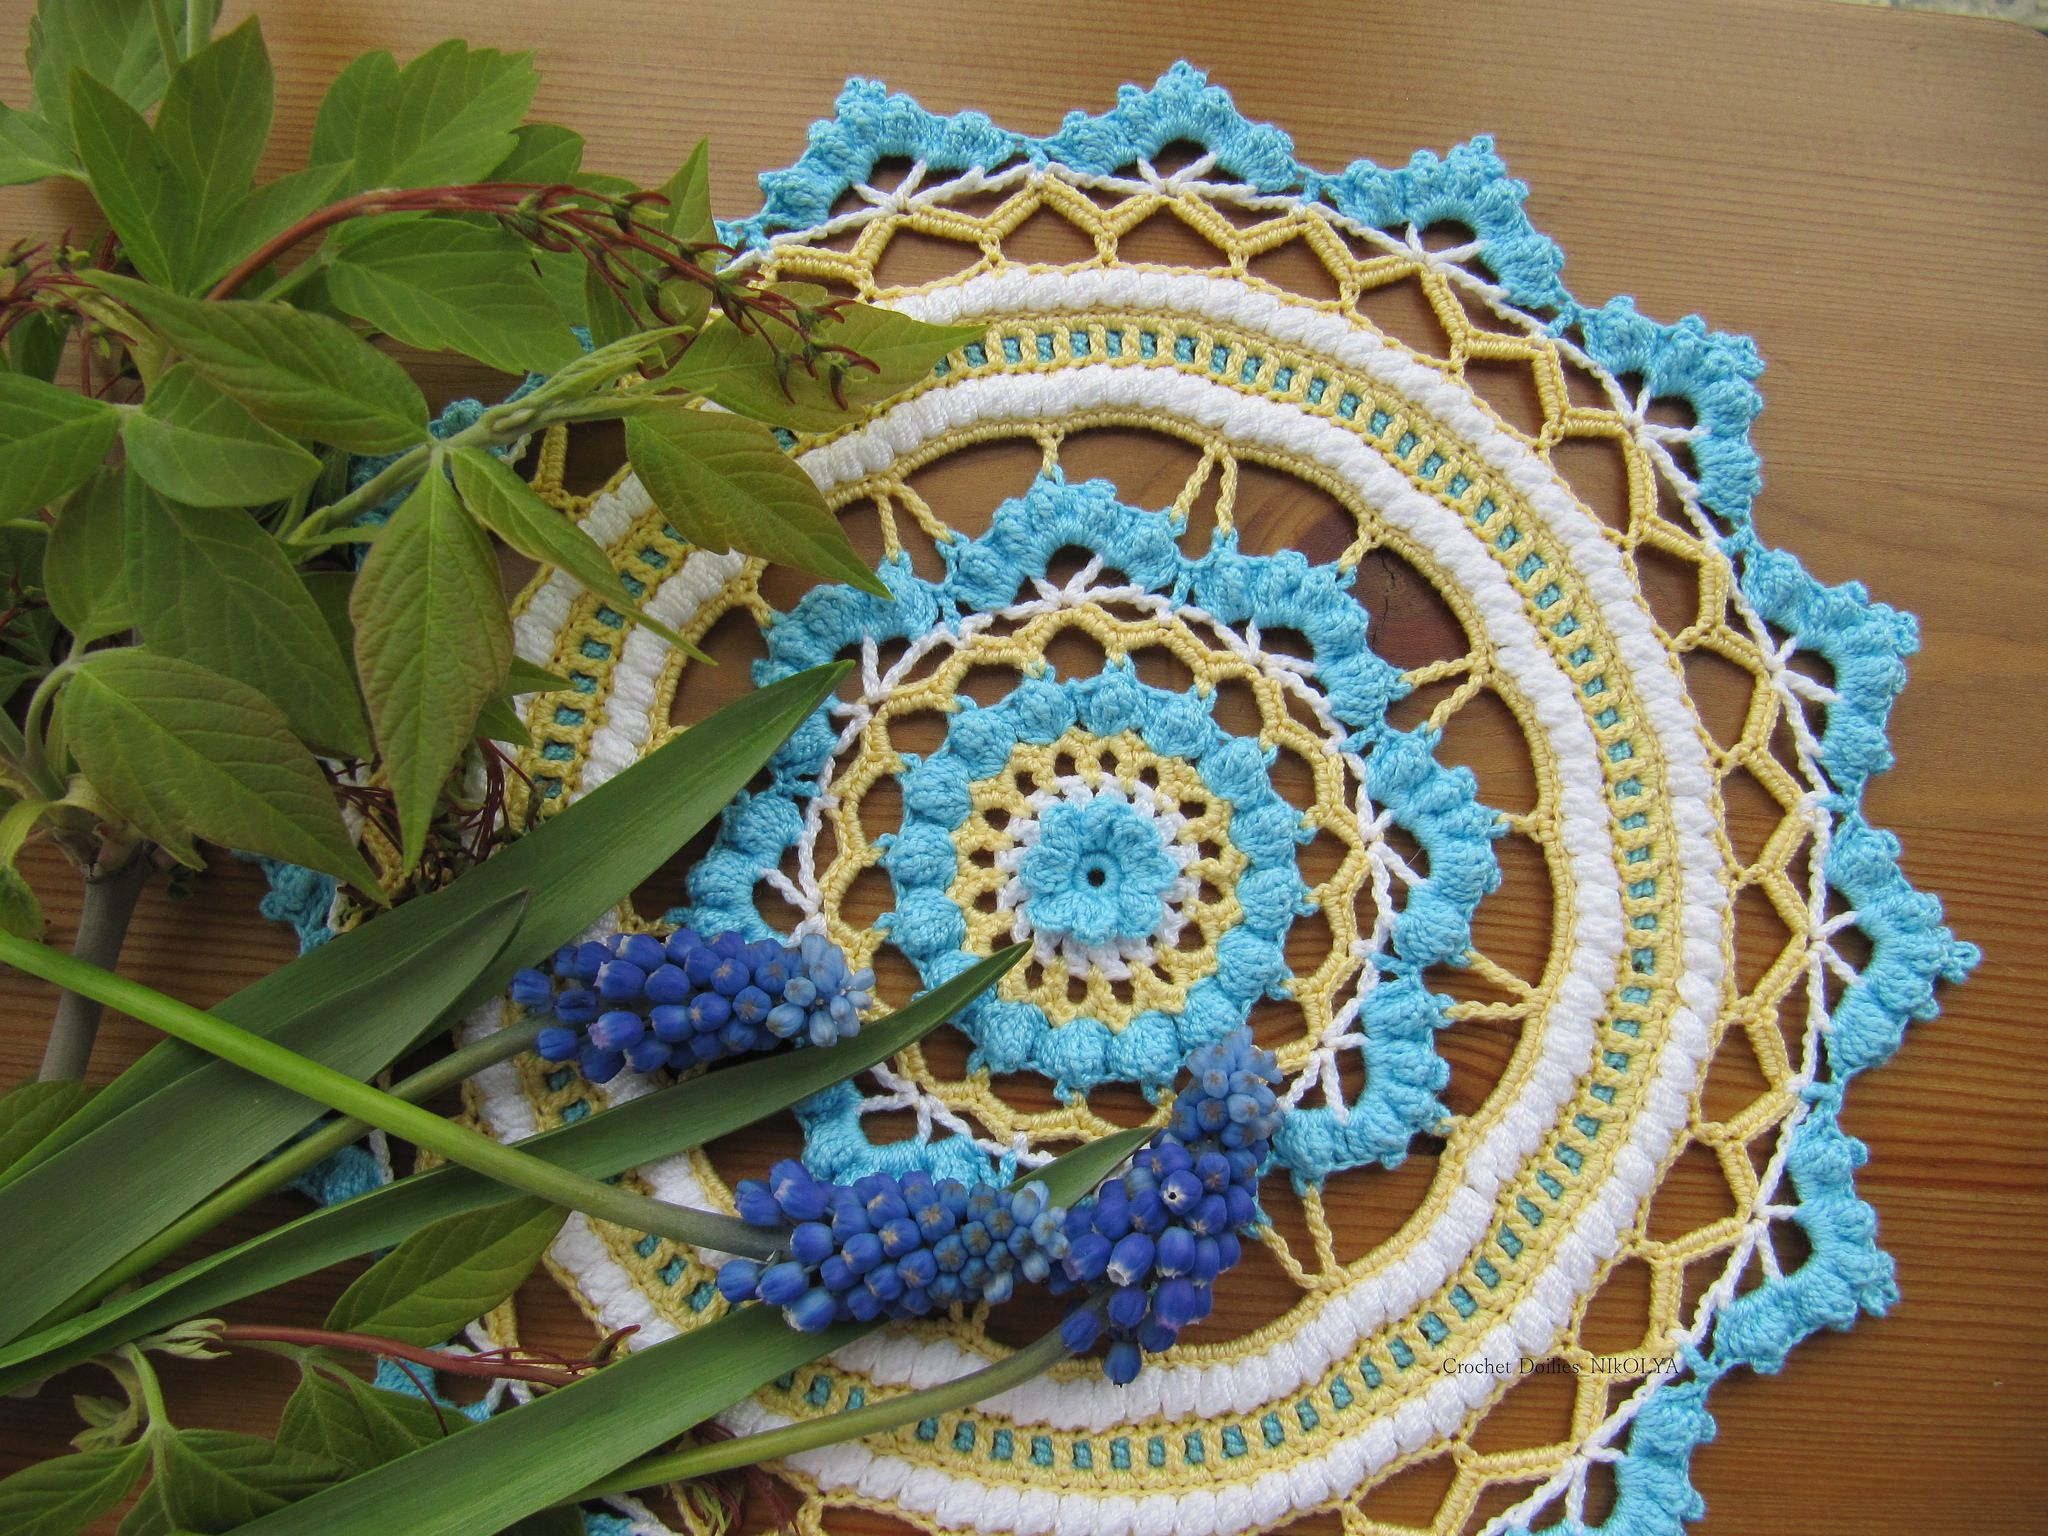 Img9111 coventry free pattern and crochet doilies httpsflicpgd68vj img9111 coventry doily coventrycrochet doiliesfree patternannadoilies bankloansurffo Image collections